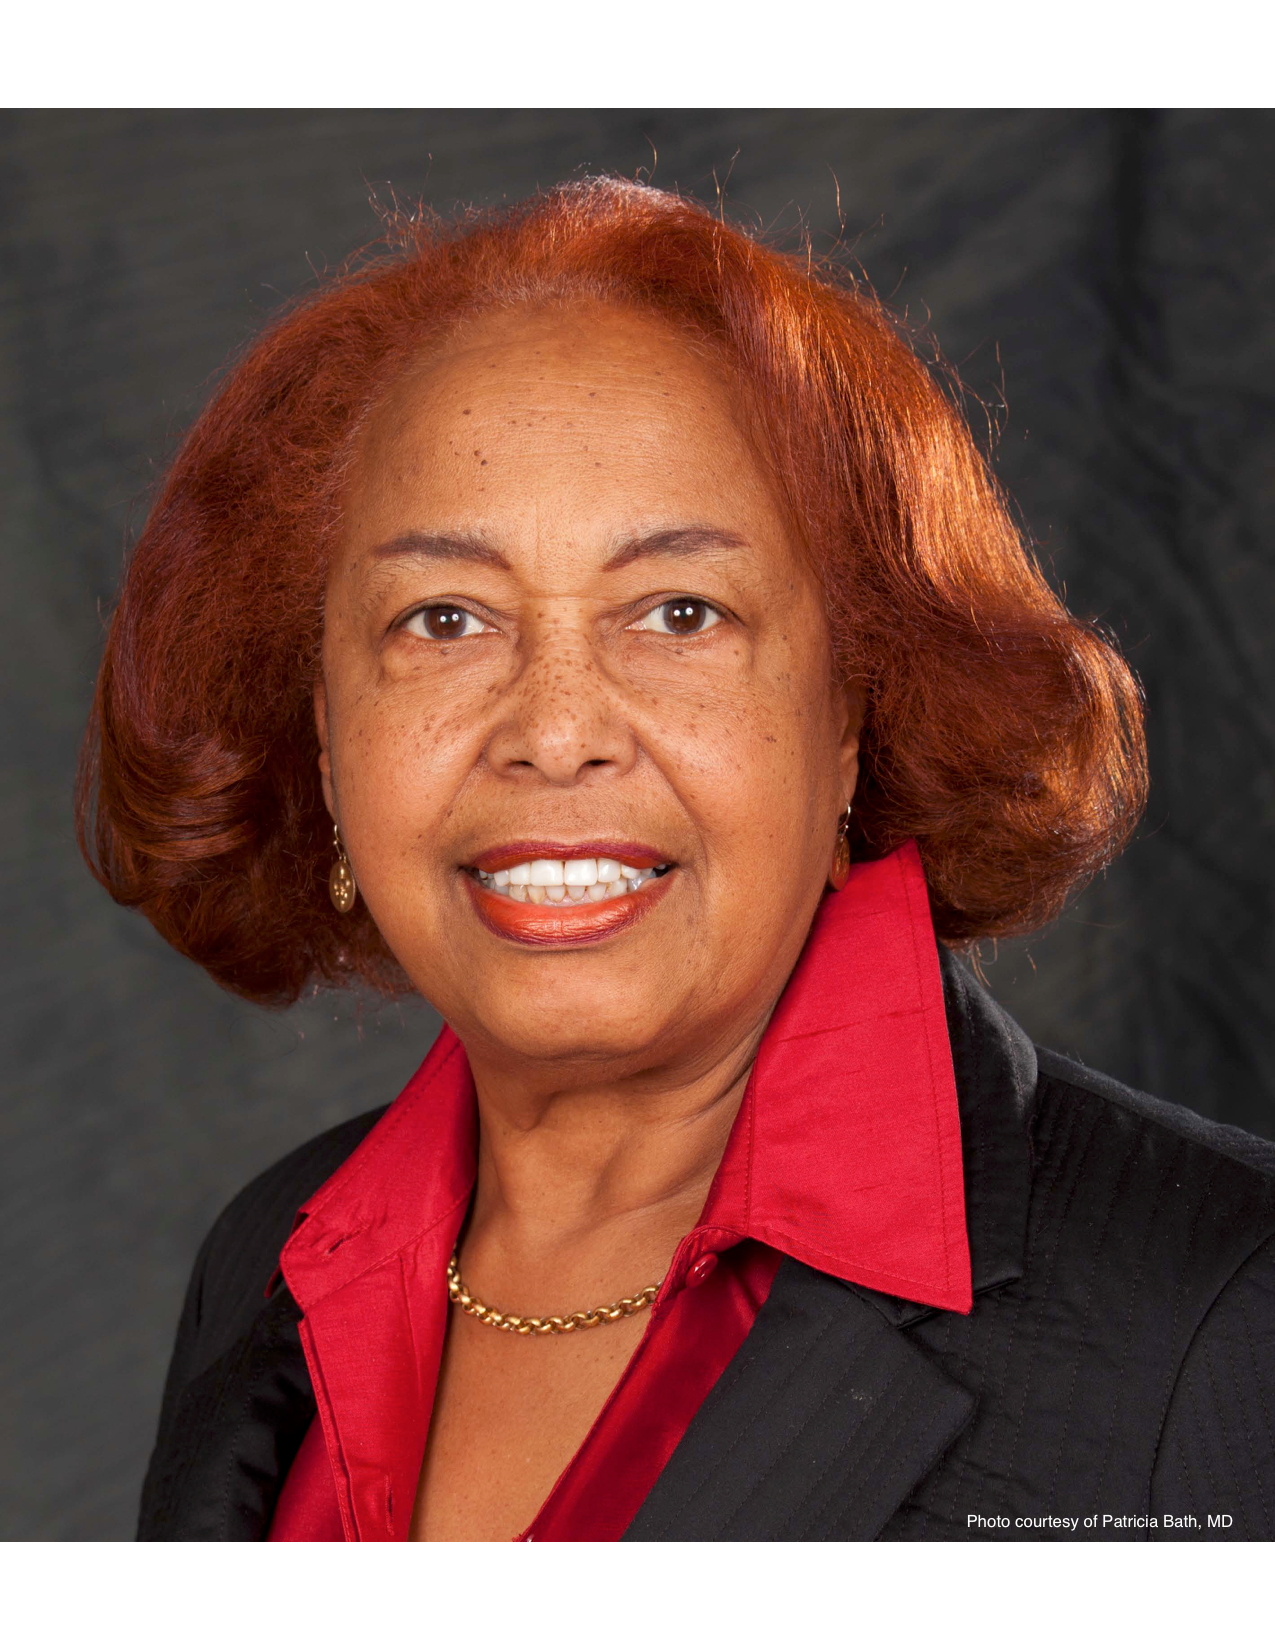 Professional photo of Dr. Patricia Bath